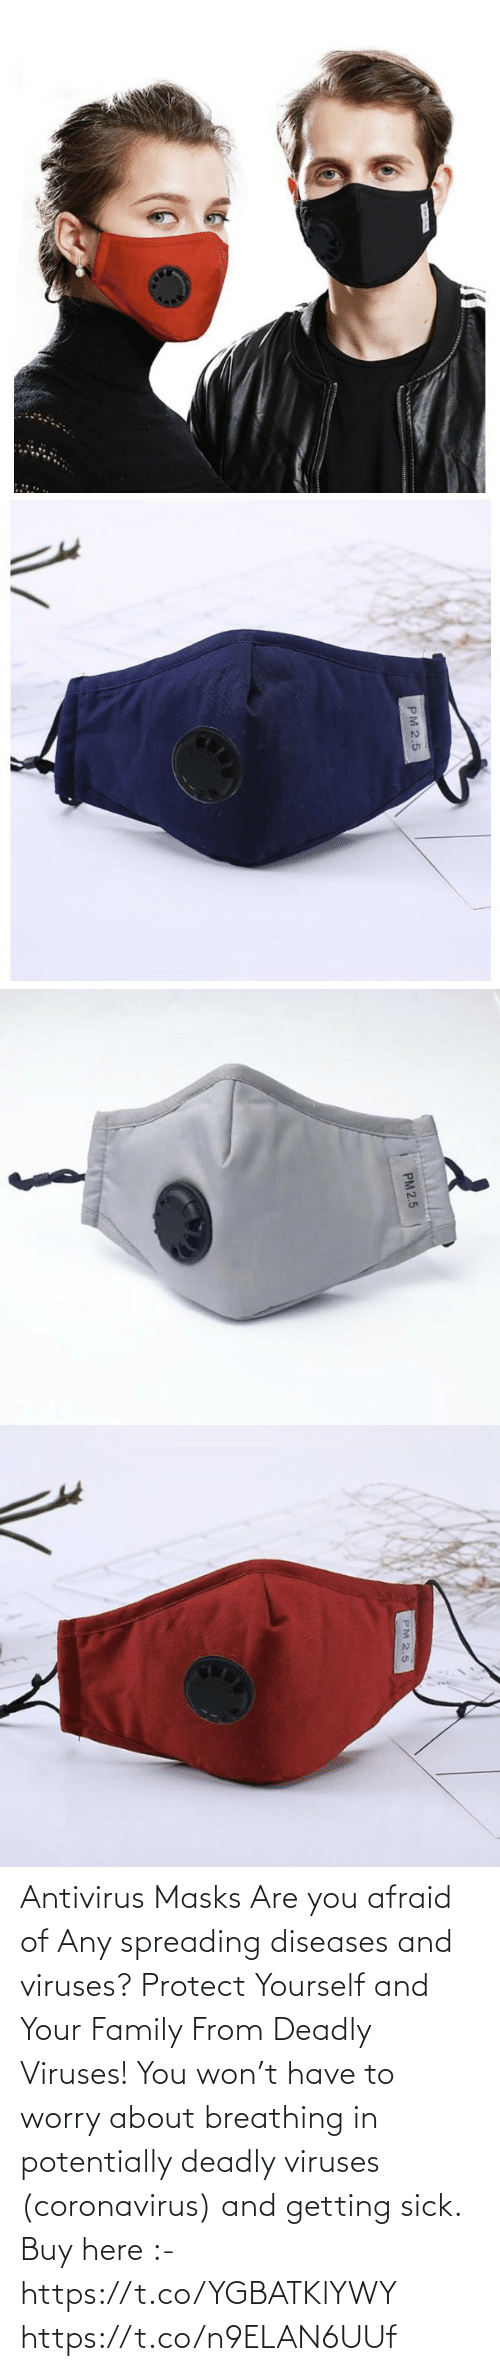 Deadly: Antivirus Masks  Are you afraid of Any spreading diseases and viruses?    Protect Yourself and Your Family From Deadly Viruses!   You won't have to worry about breathing in potentially deadly viruses (coronavirus) and getting sick.  Buy here :- https://t.co/YGBATKlYWY https://t.co/n9ELAN6UUf